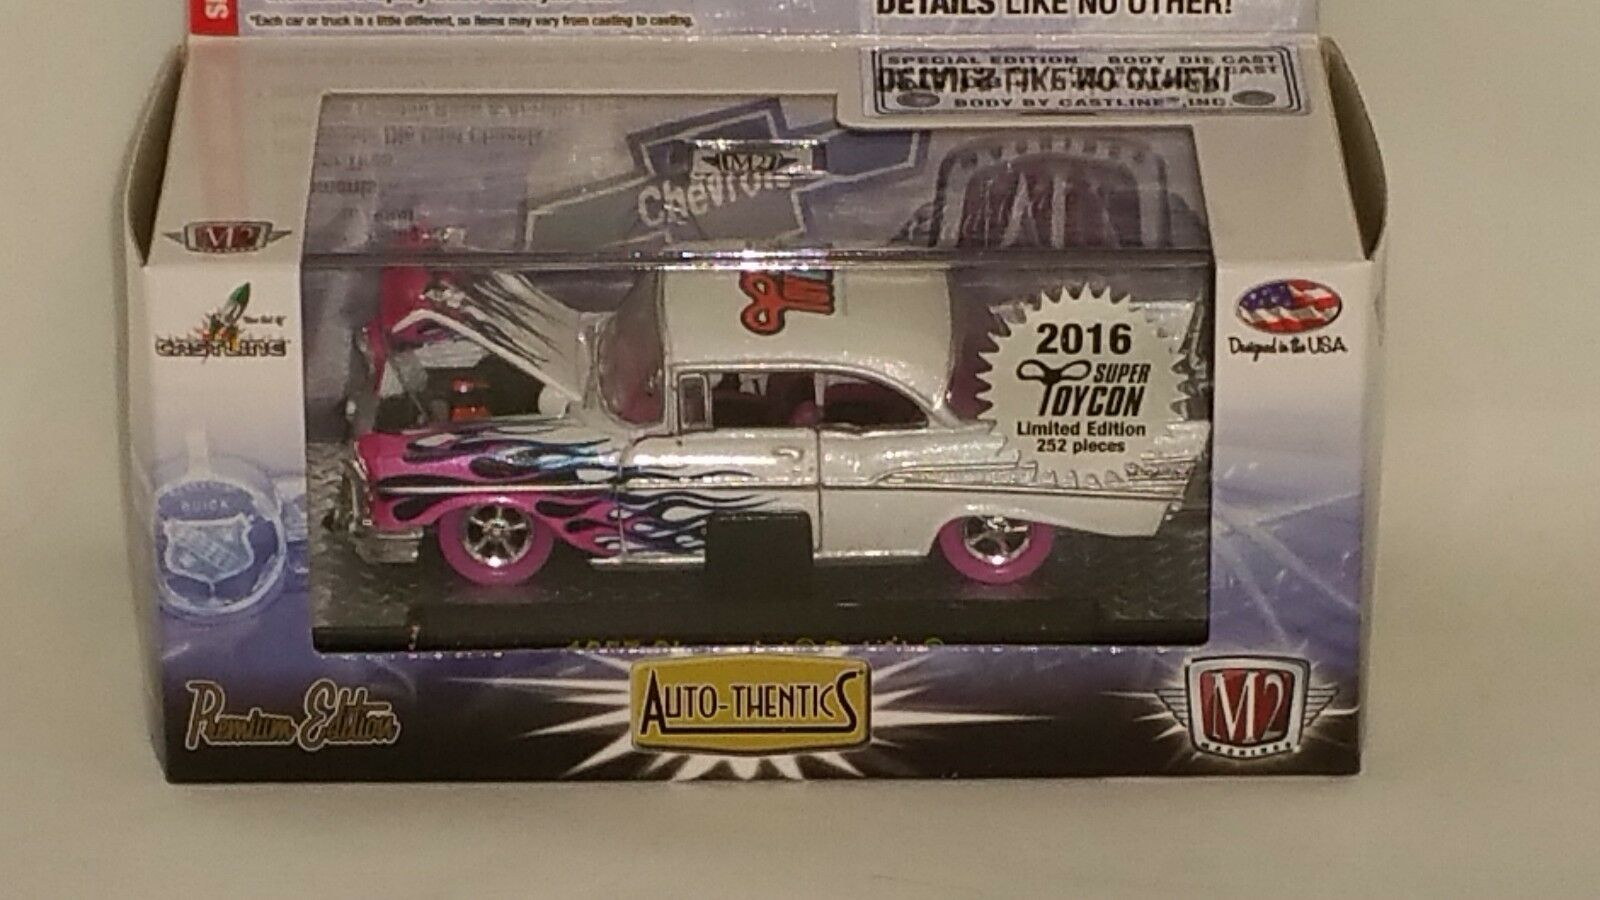 2016 M2 SUPER TOYCON CONVENTION SUPER CHASE CAR 1957 CHEVY BELAIR  1 OF 252